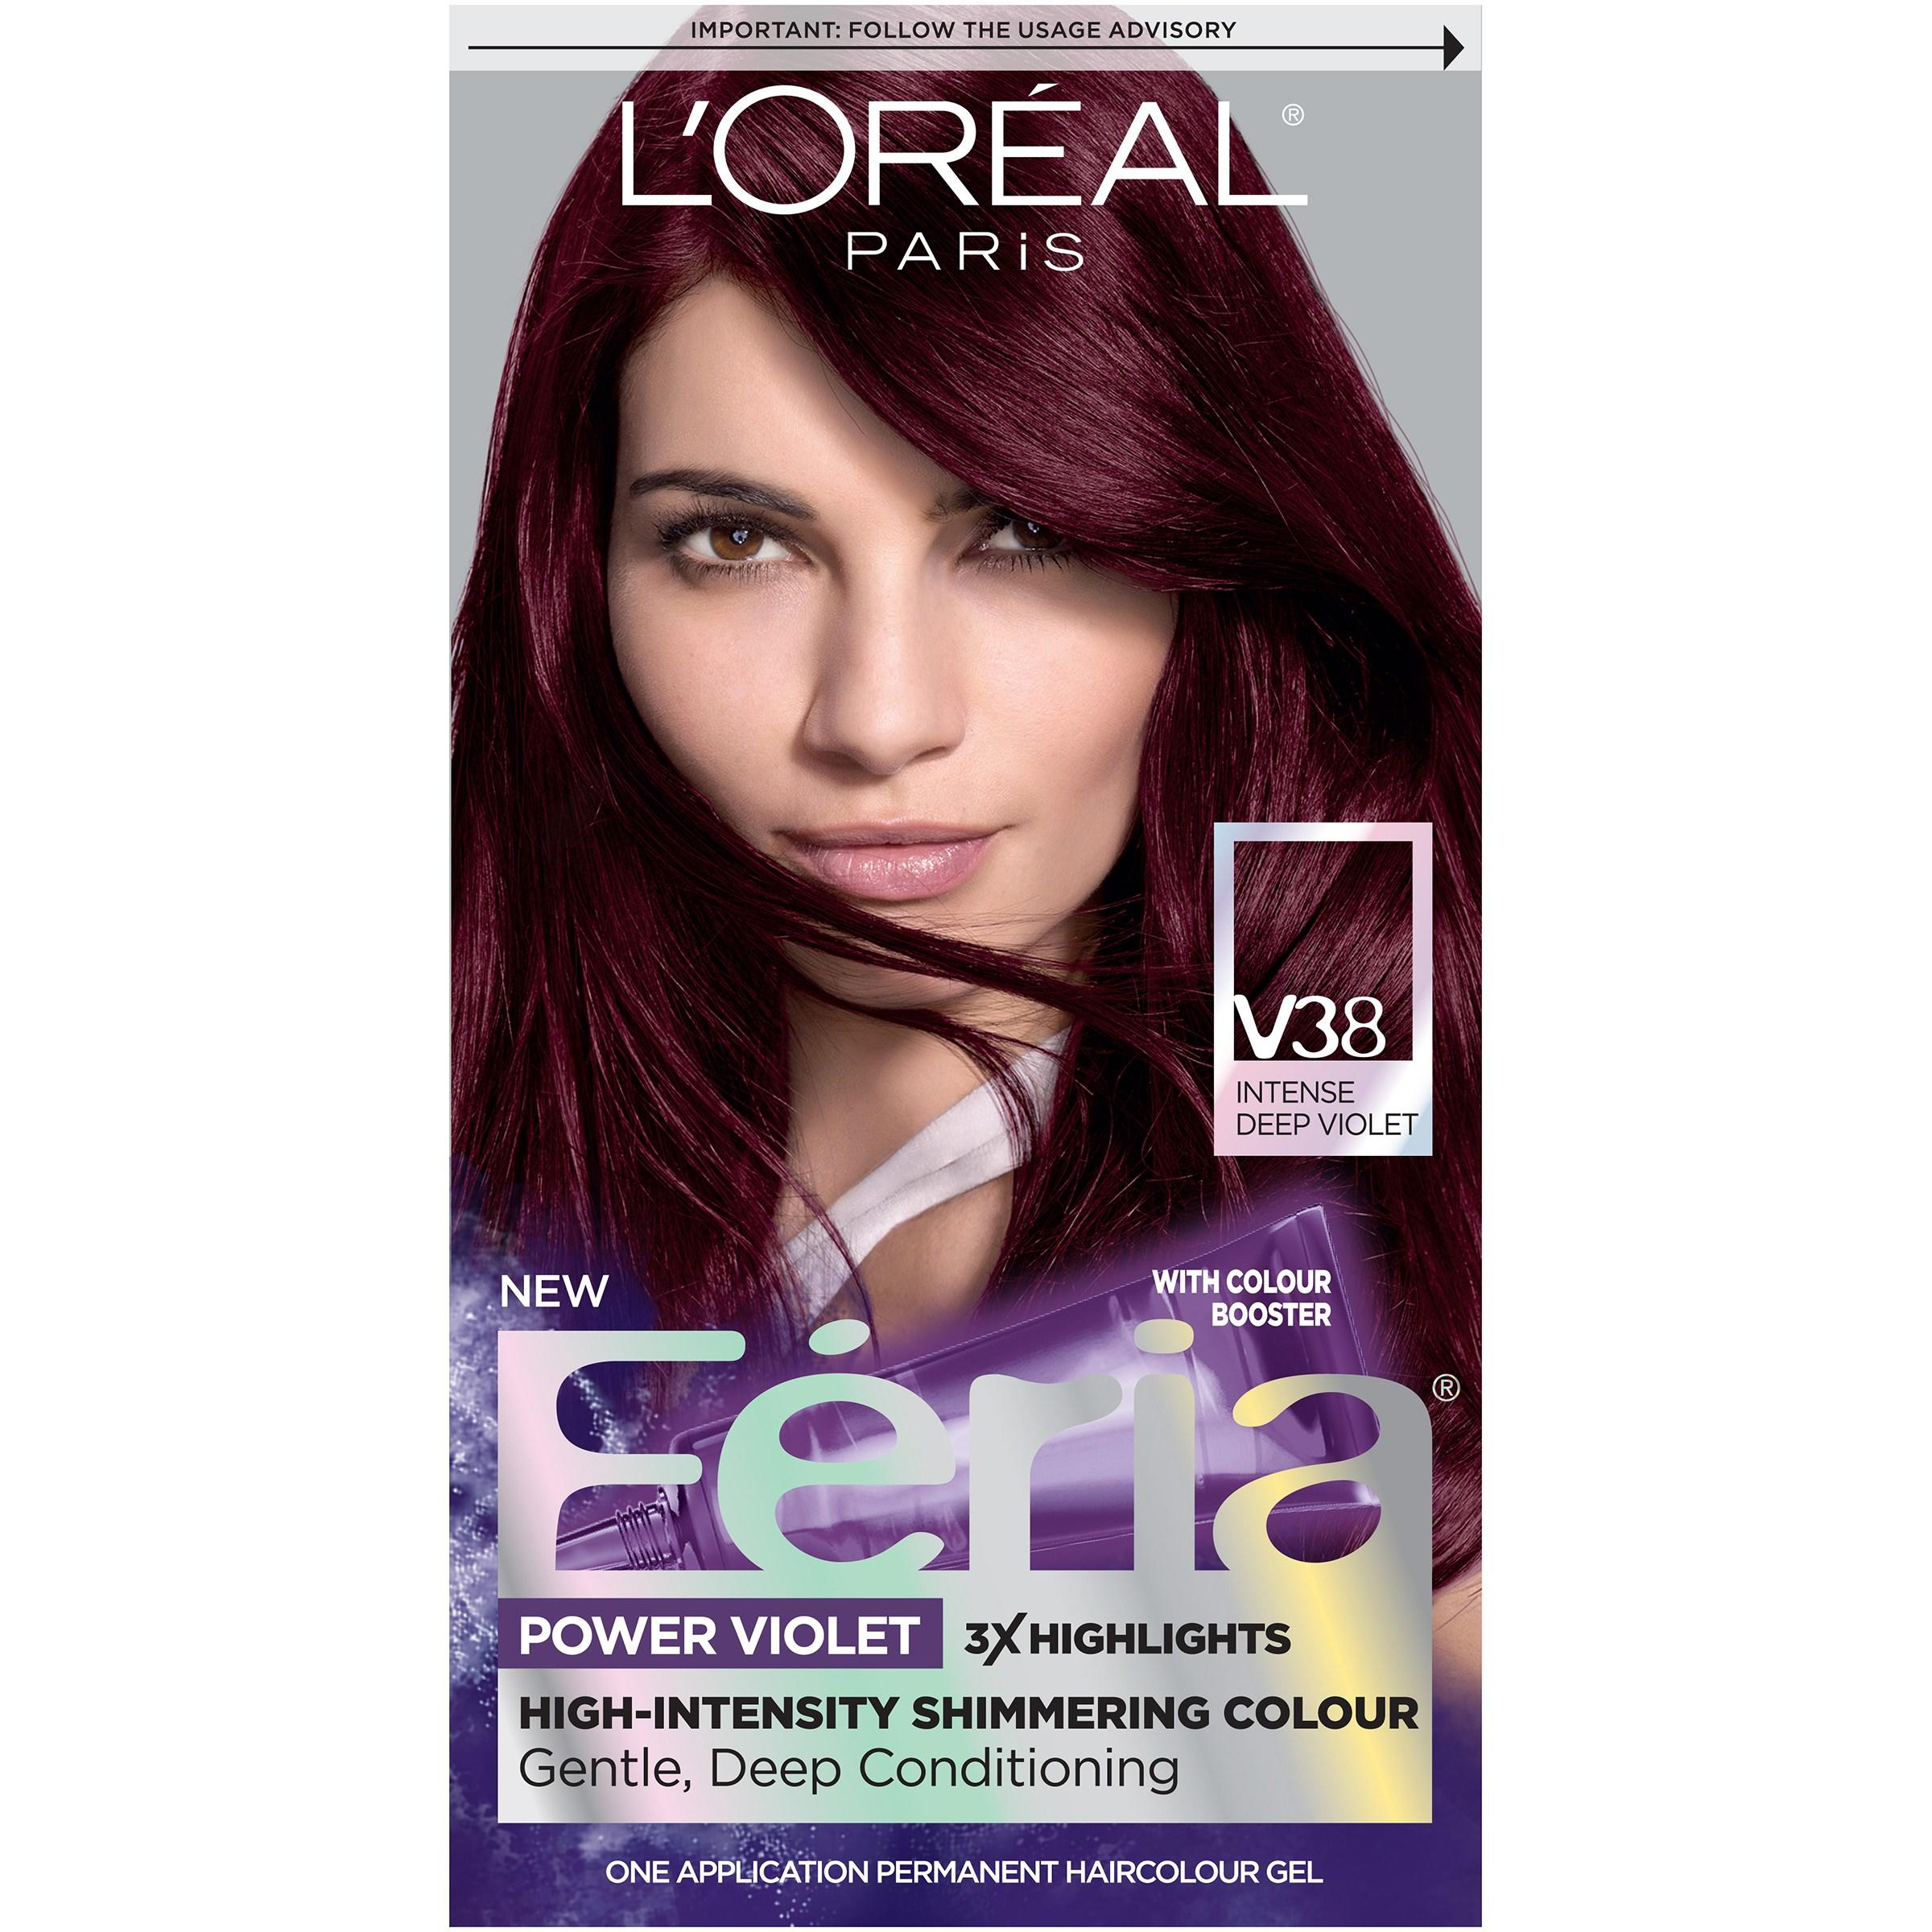 New Loreal Paris Feria Hair Color V38 Intense Deep Violet Ebay Ideas With Pictures